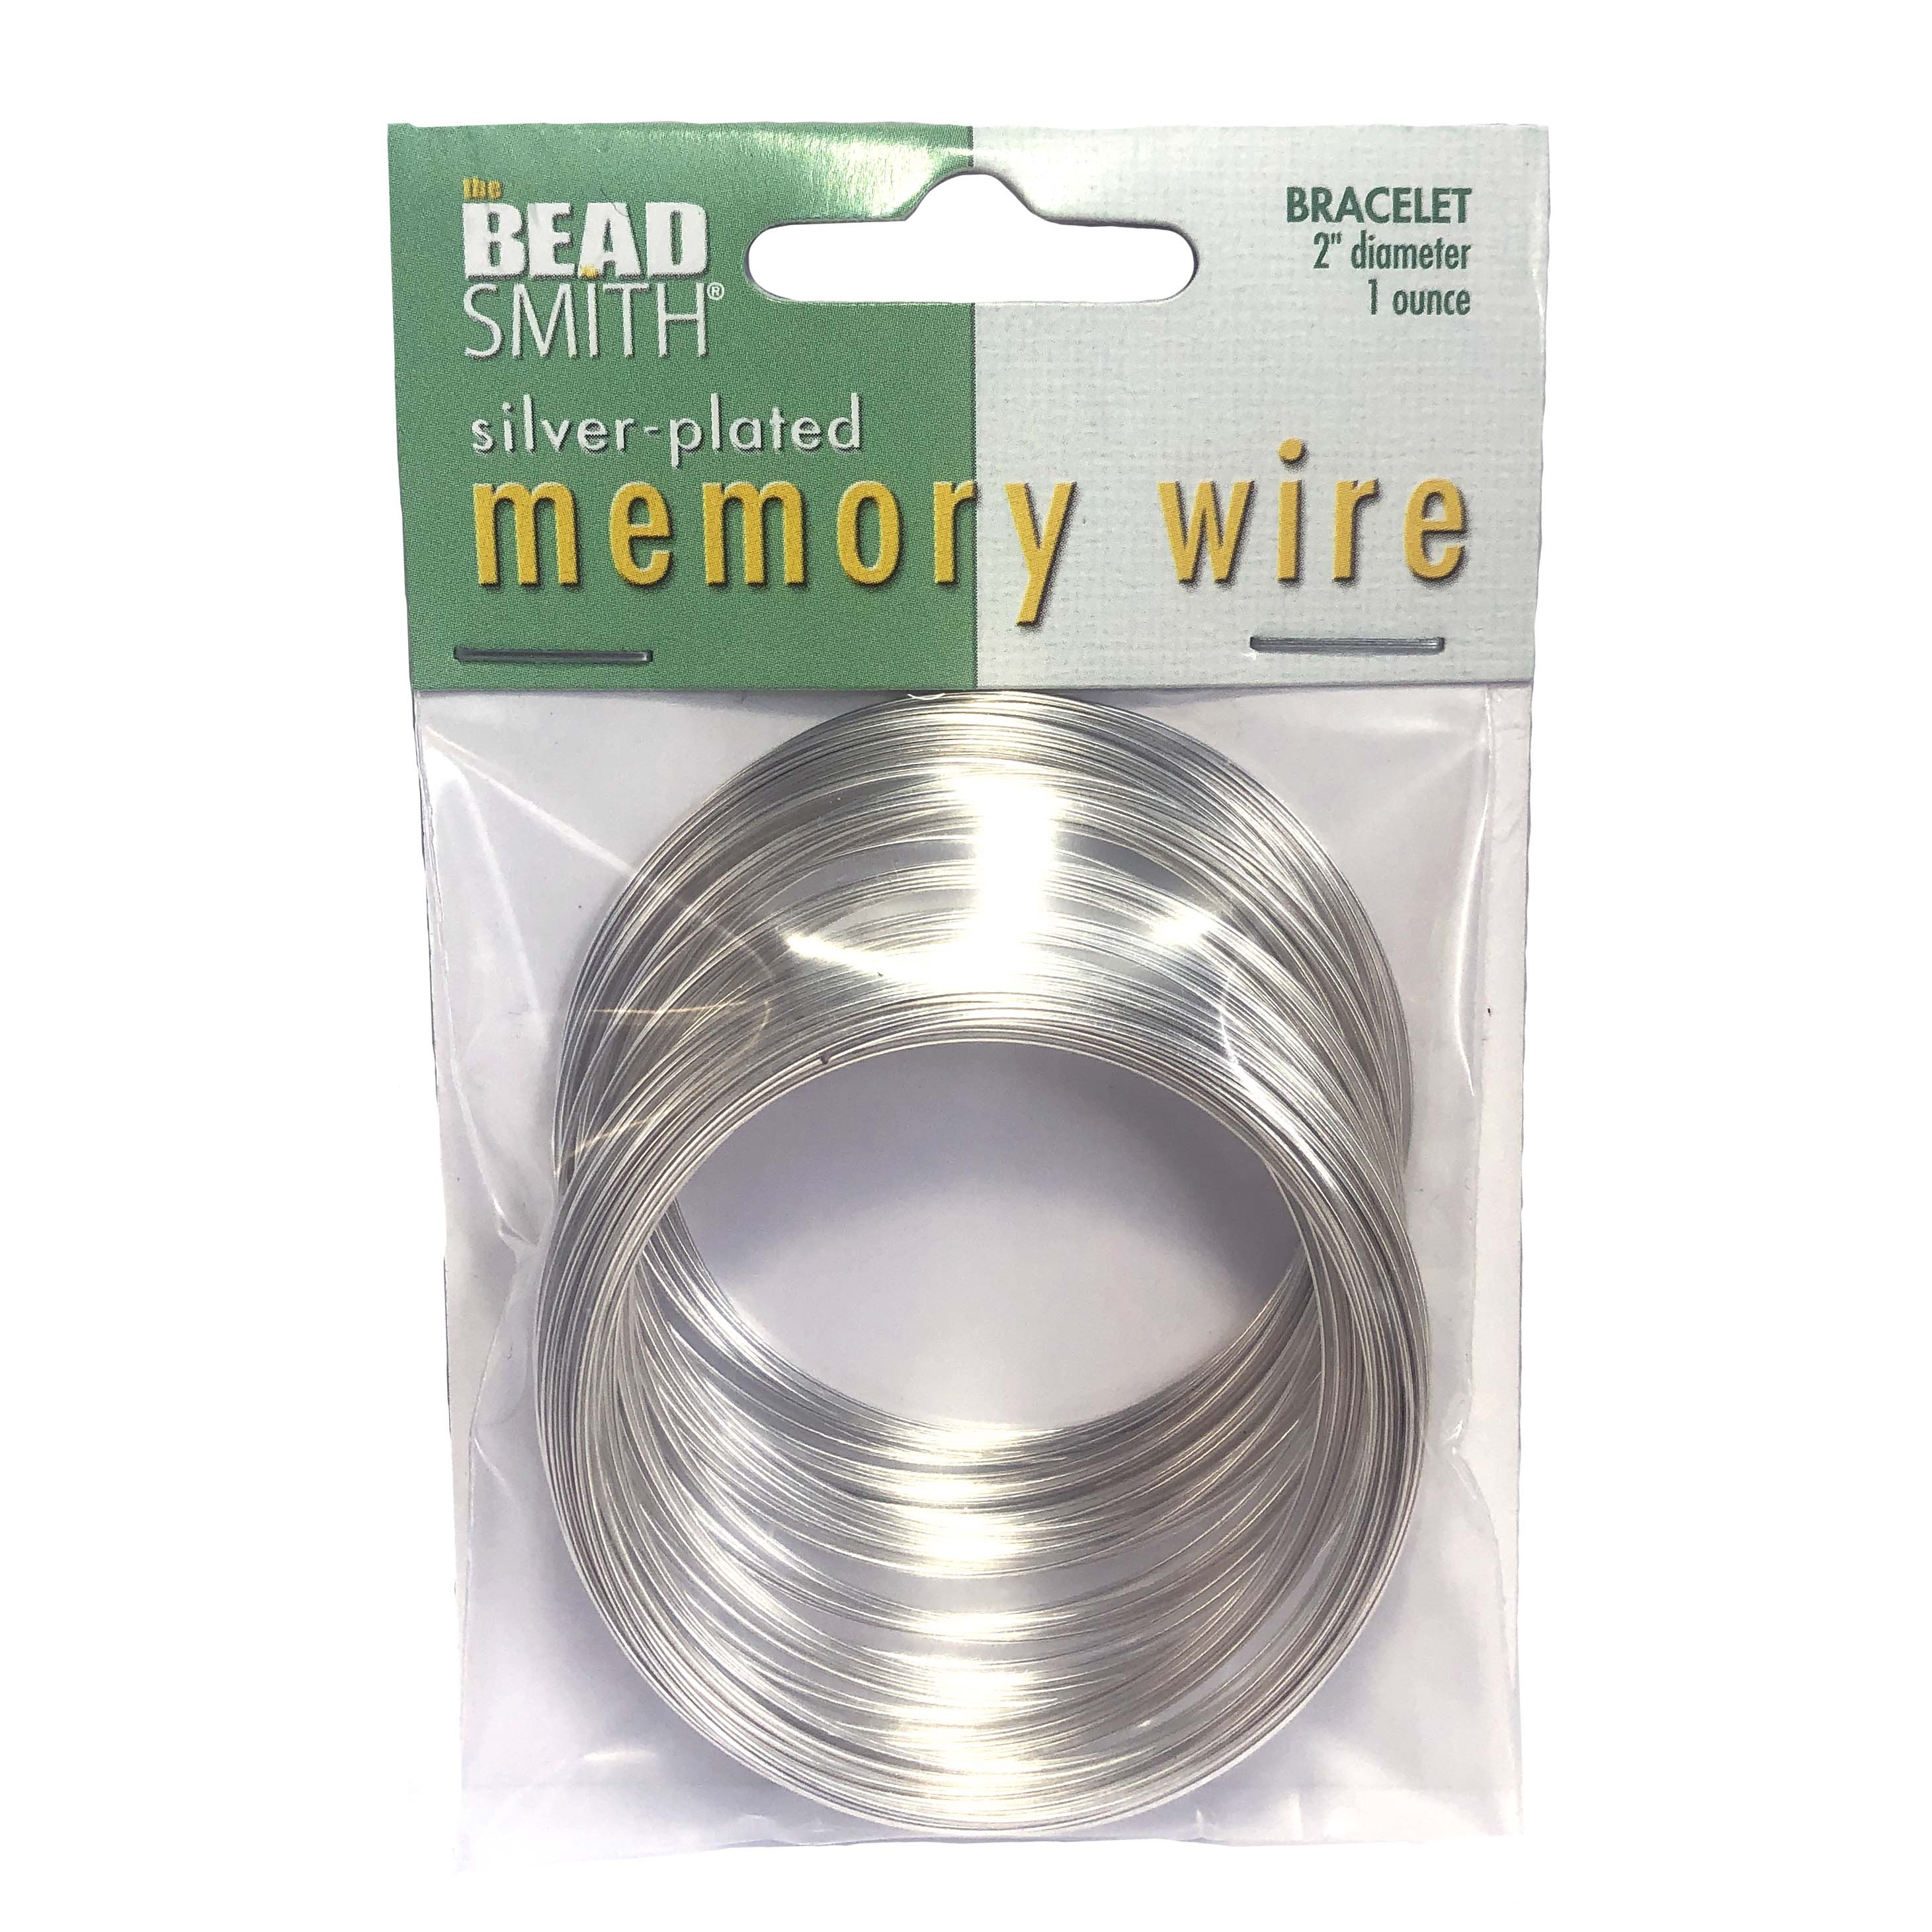 "memory wire, 1 ounce, 2"" diameter, wire, bracelet, bracelet making, beading, beading supplies, beaded bracelet making, silver wire, silverplated memory wire, jewelry supplies"